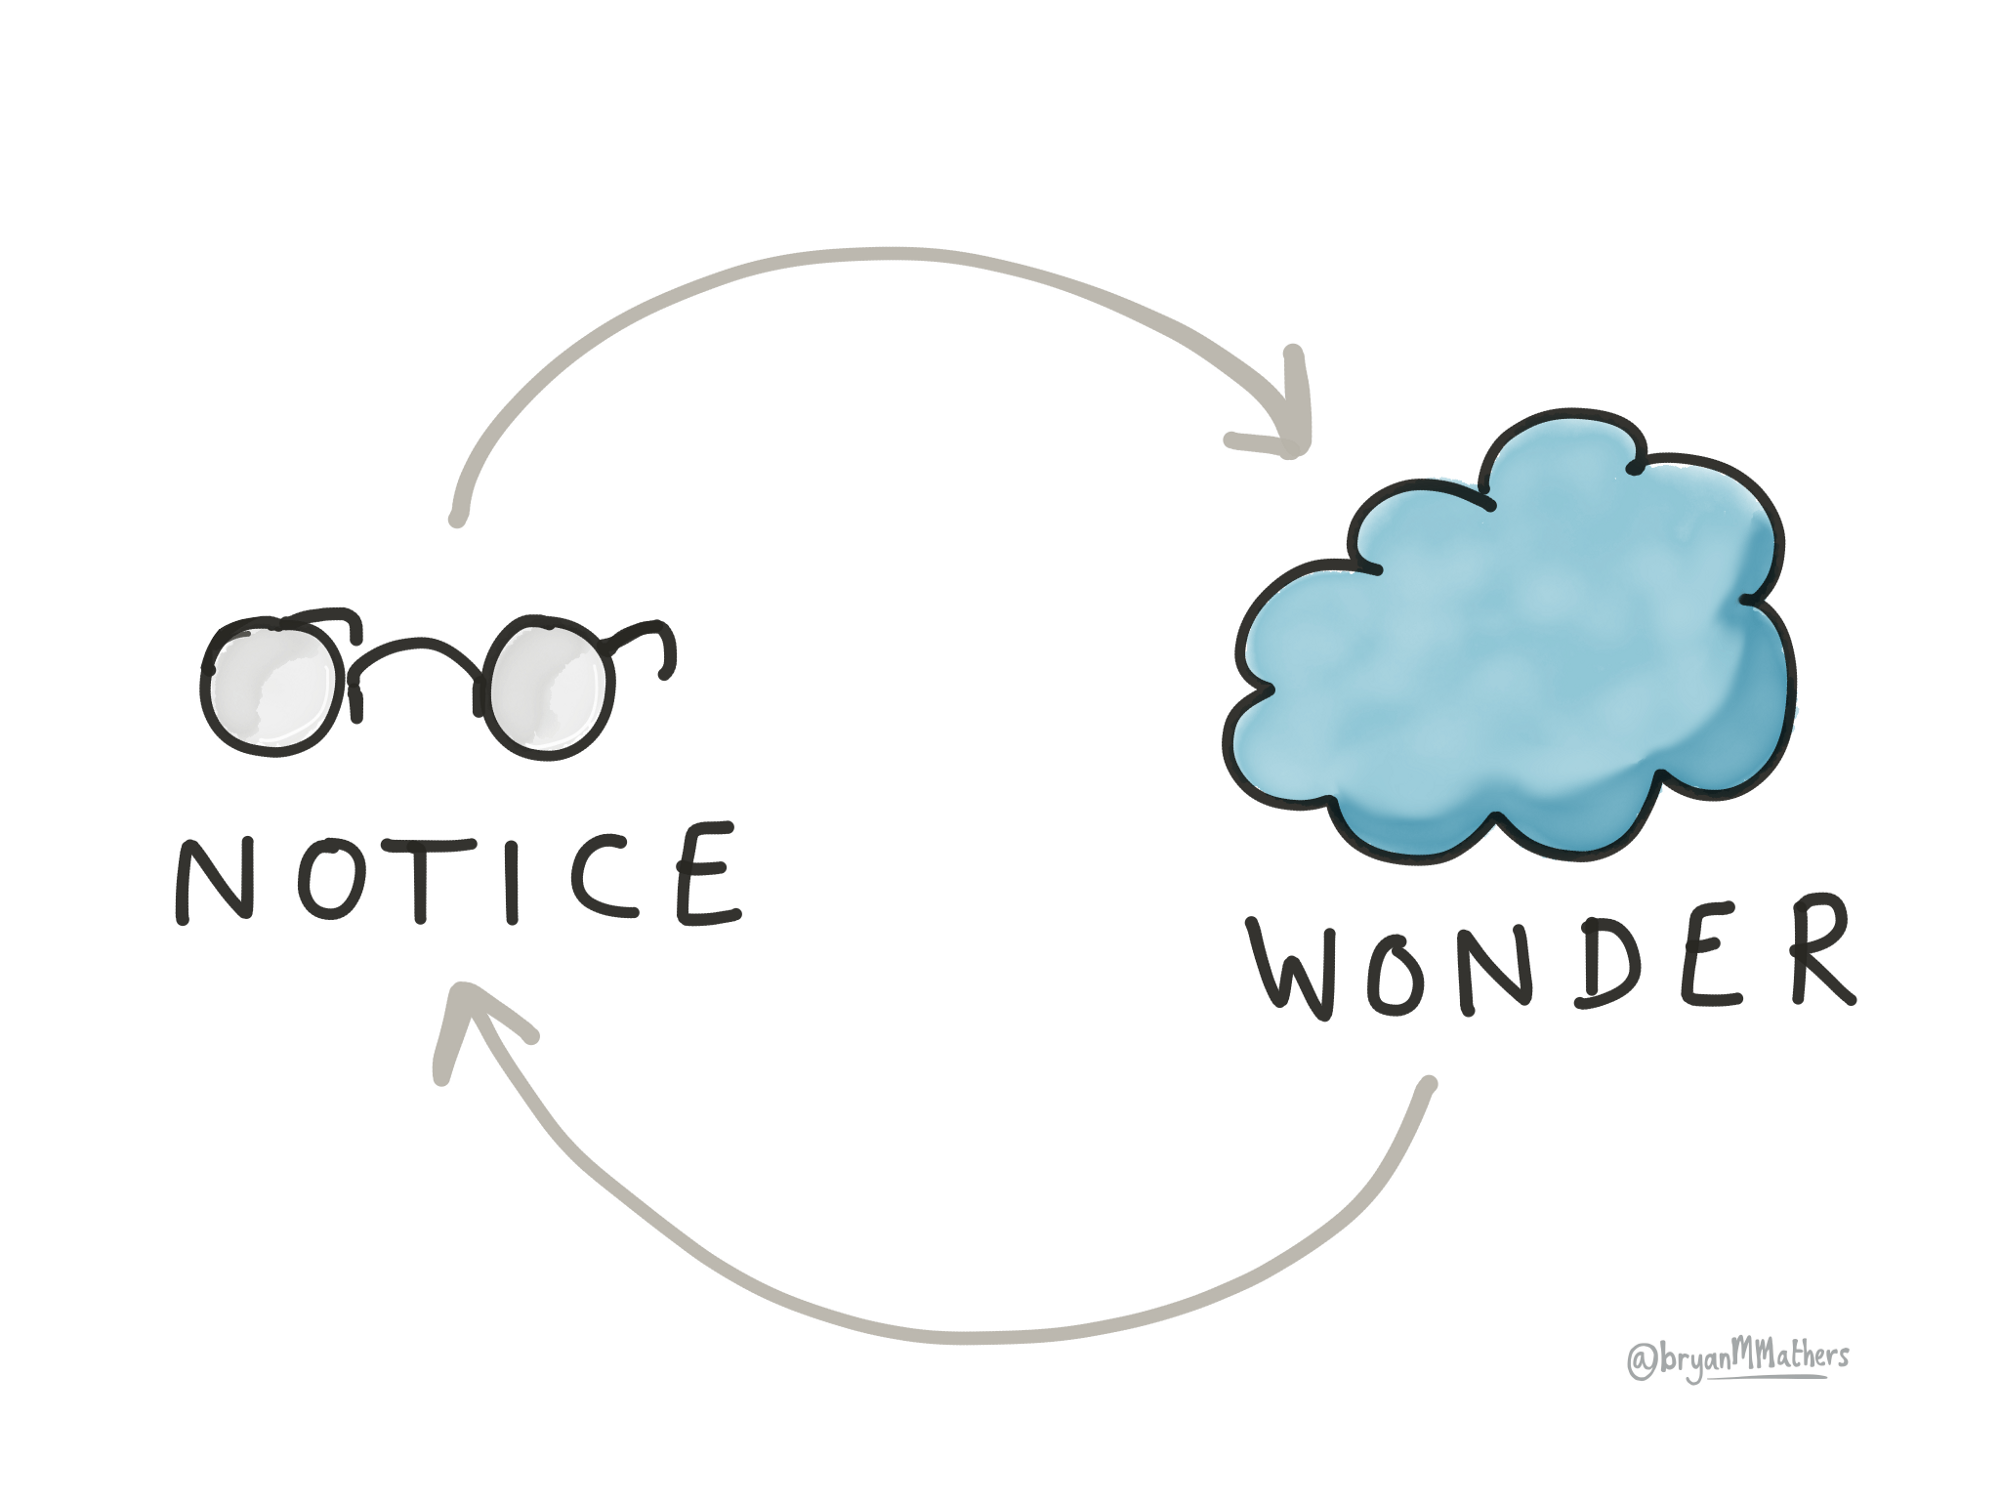 Notice and wonder by  @bryanMMathers is licenced under  CC-BY-ND